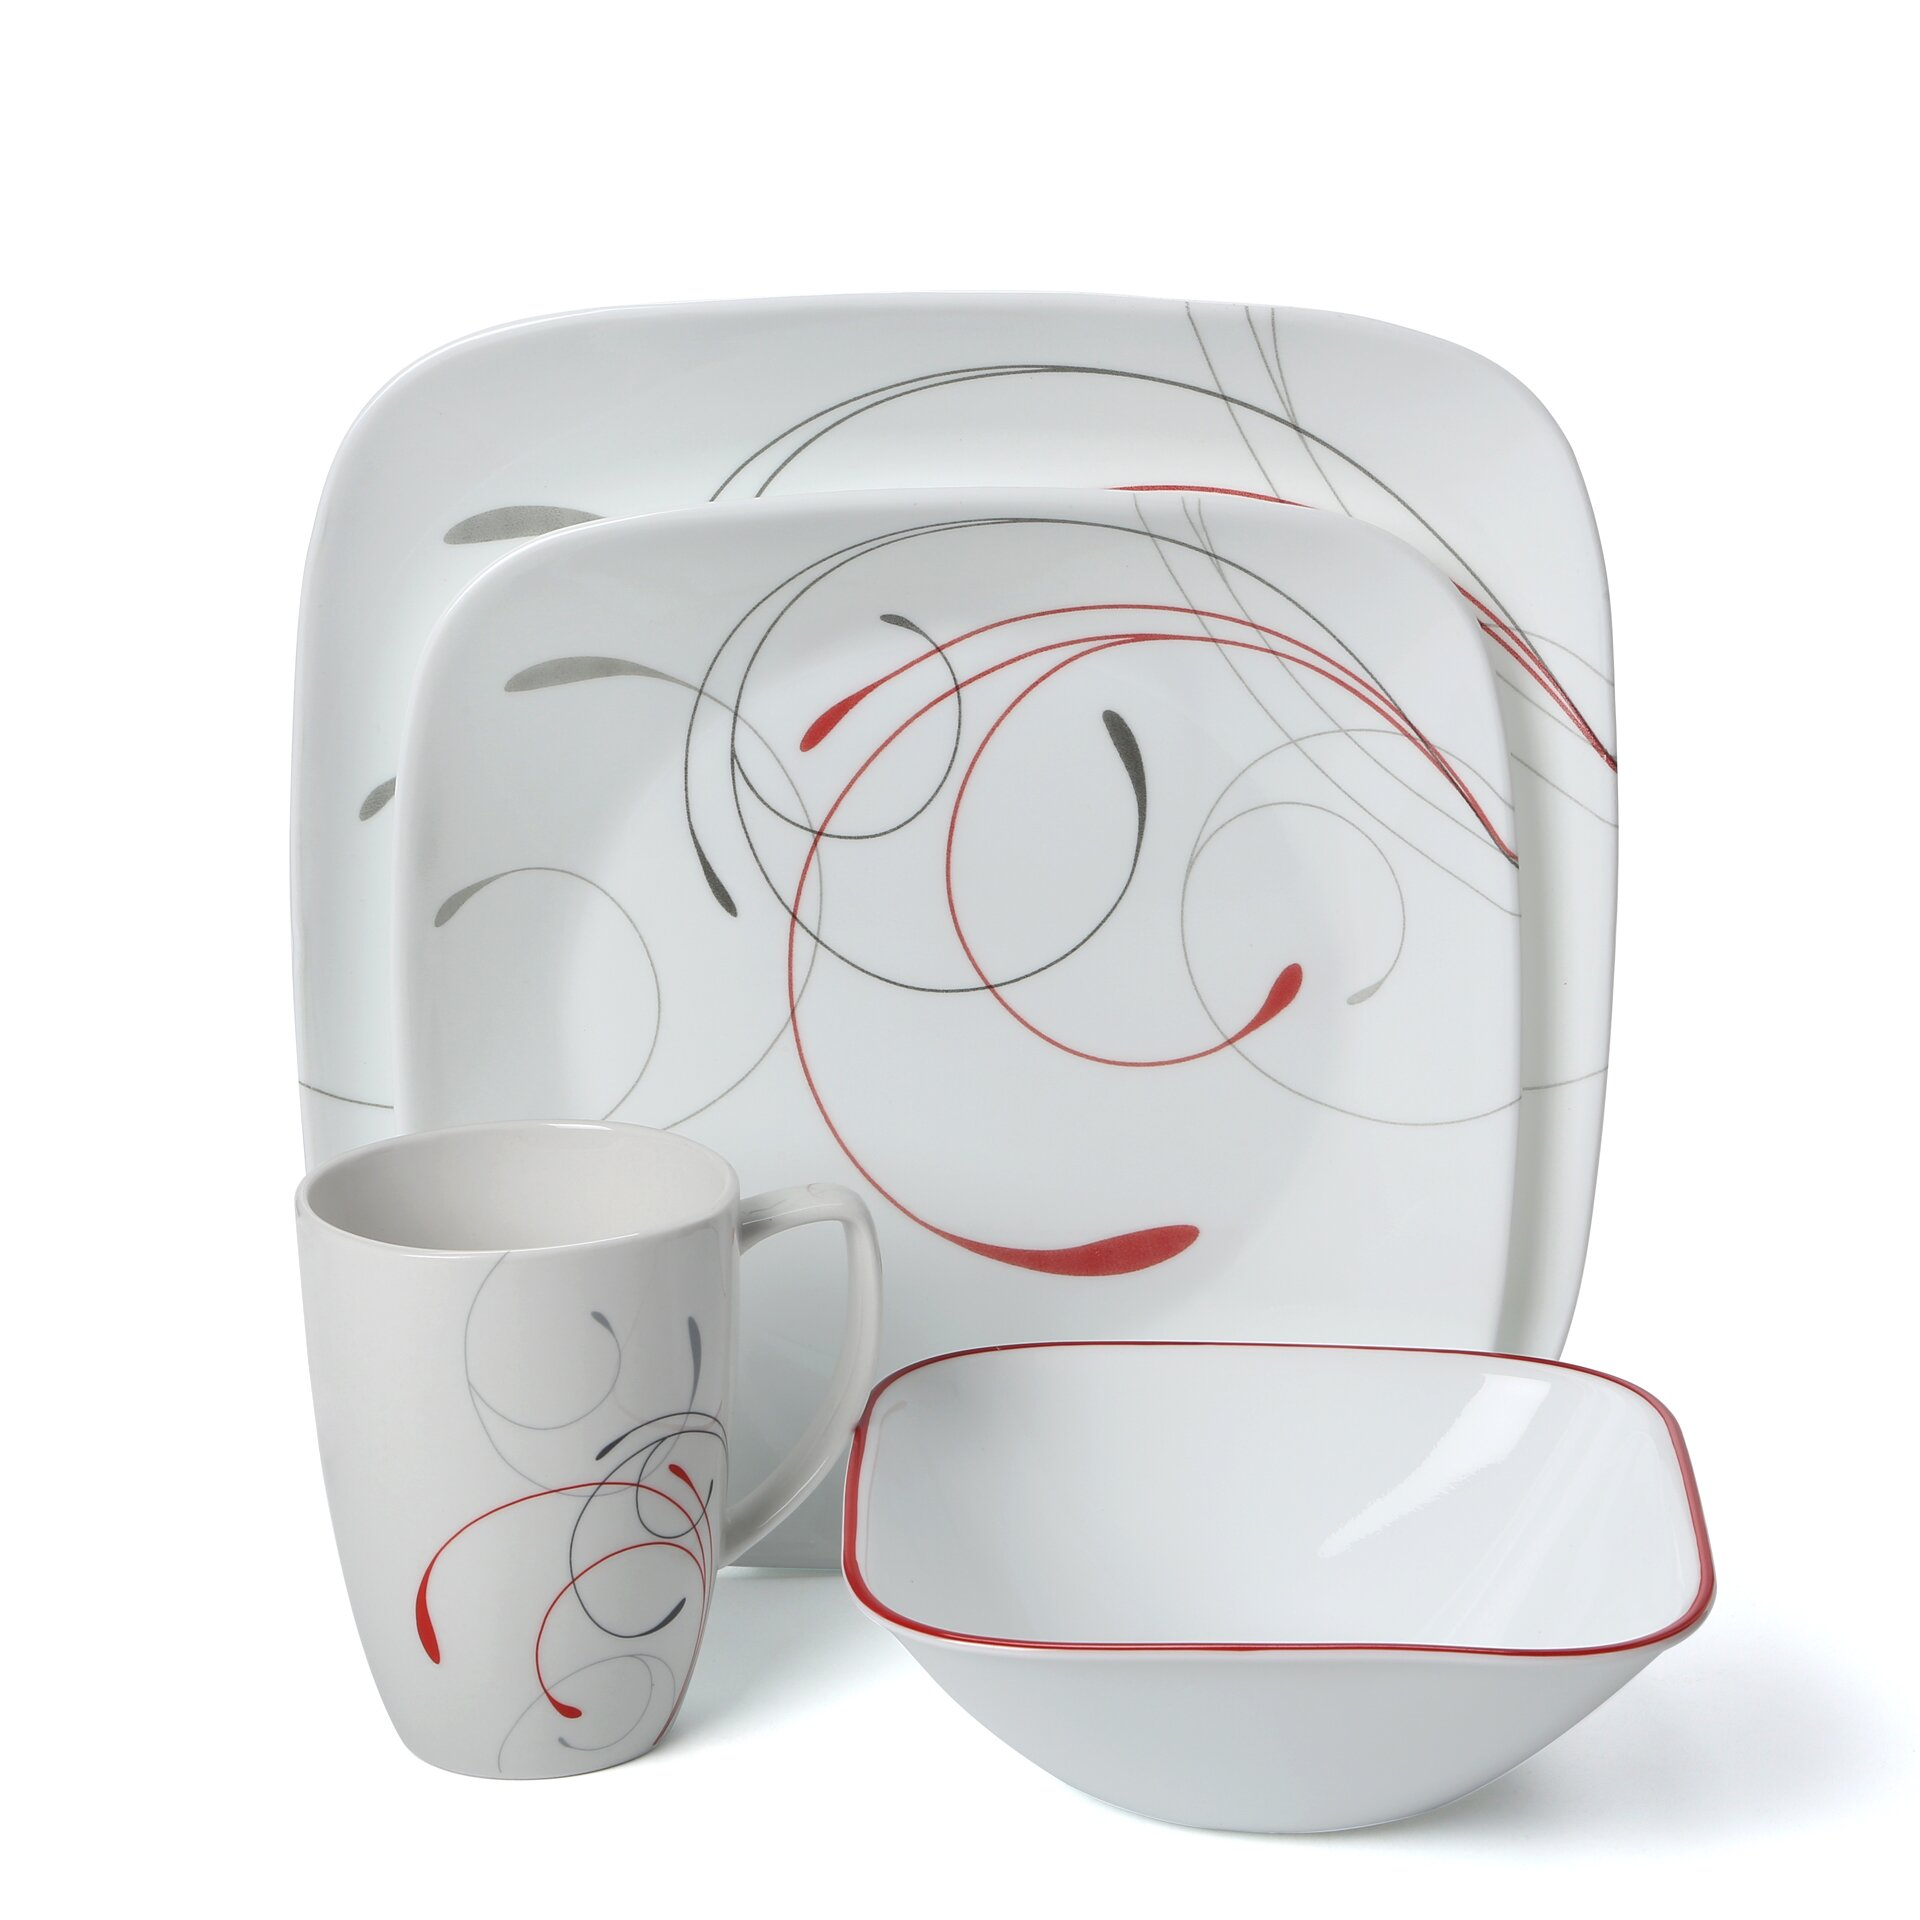 Shop Corelle at the Amazon Dining & Entertaining store. Free Shipping on eligible items. Everyday low prices, save up to 50%.